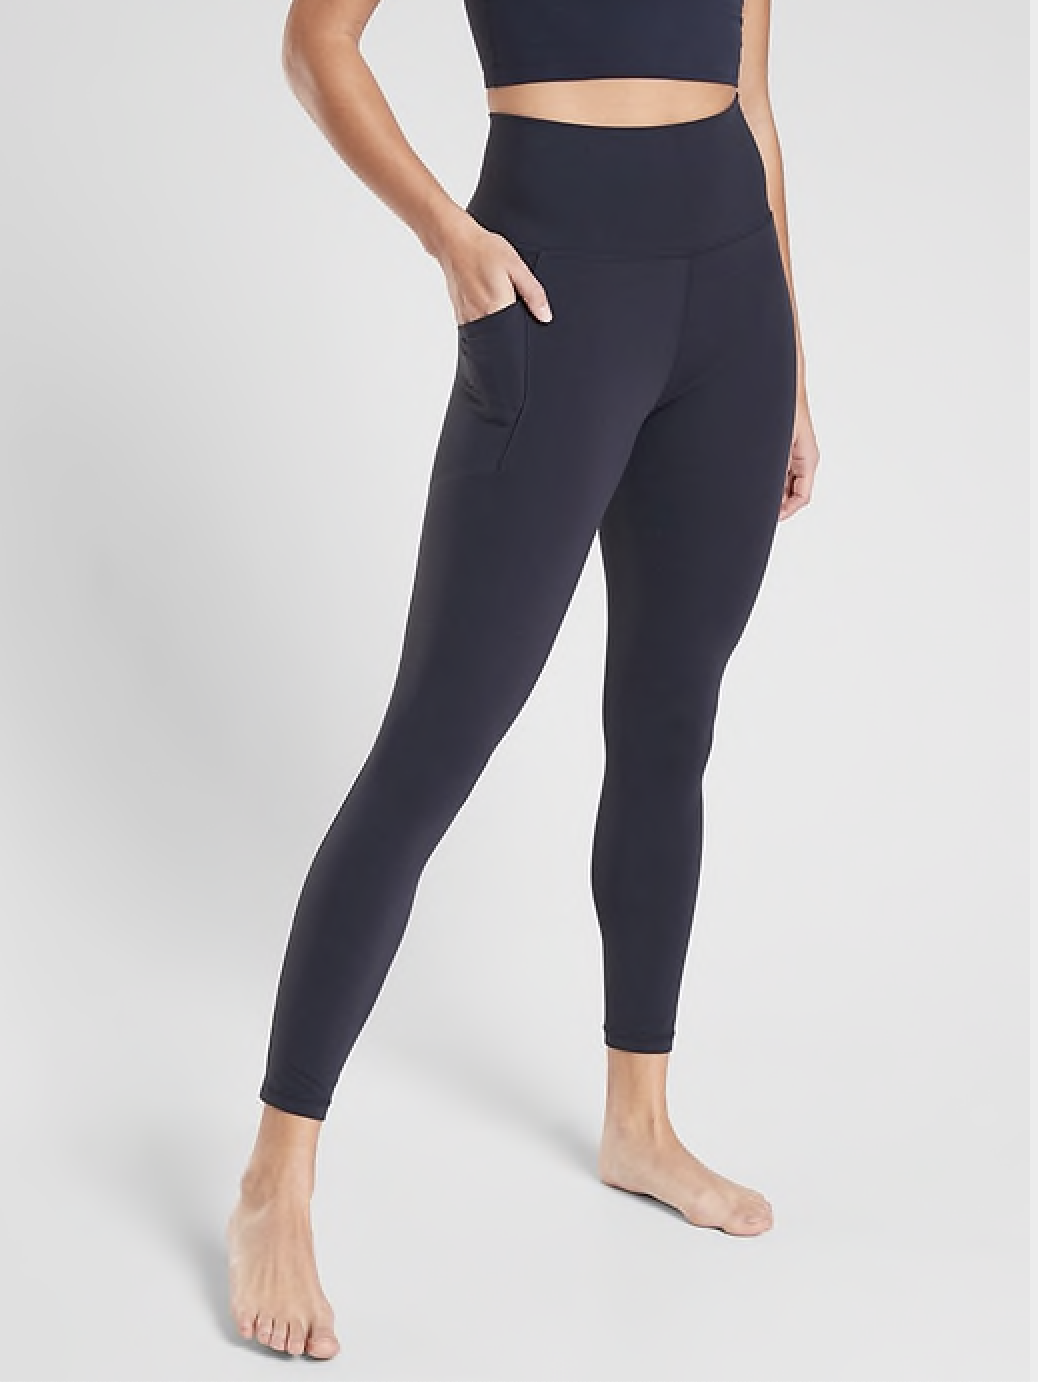 Athleta mommy daughter matching activewear